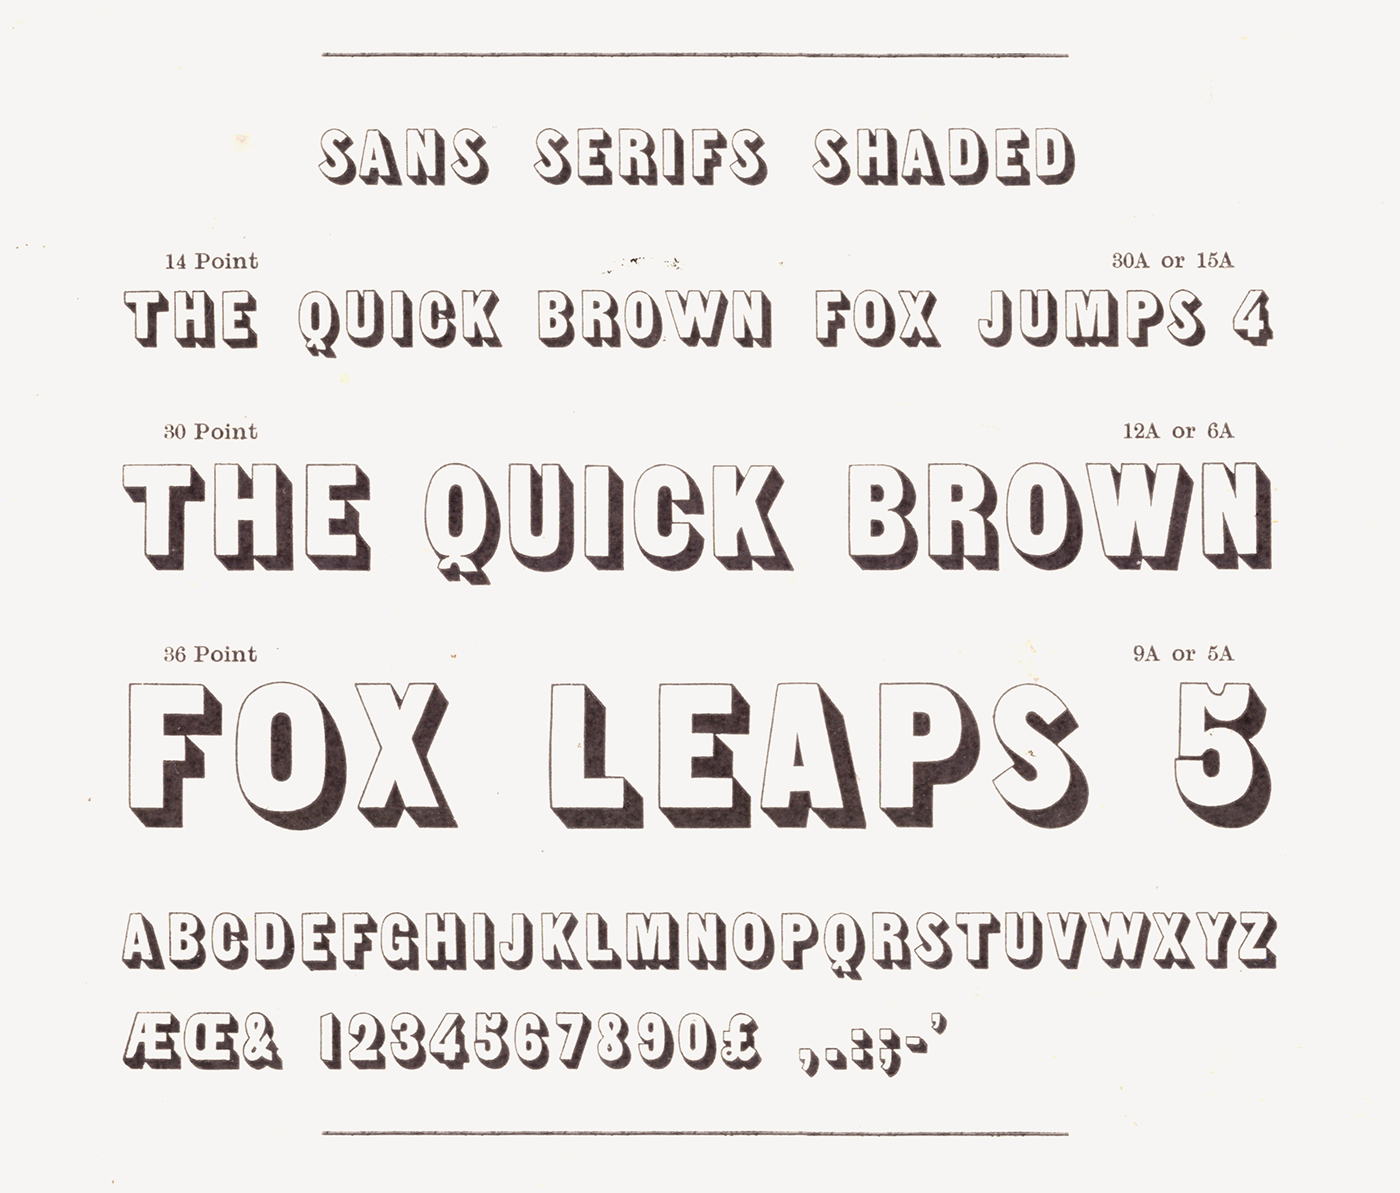 free font grotesk shaded Typeface vintage revival Retro poster Display